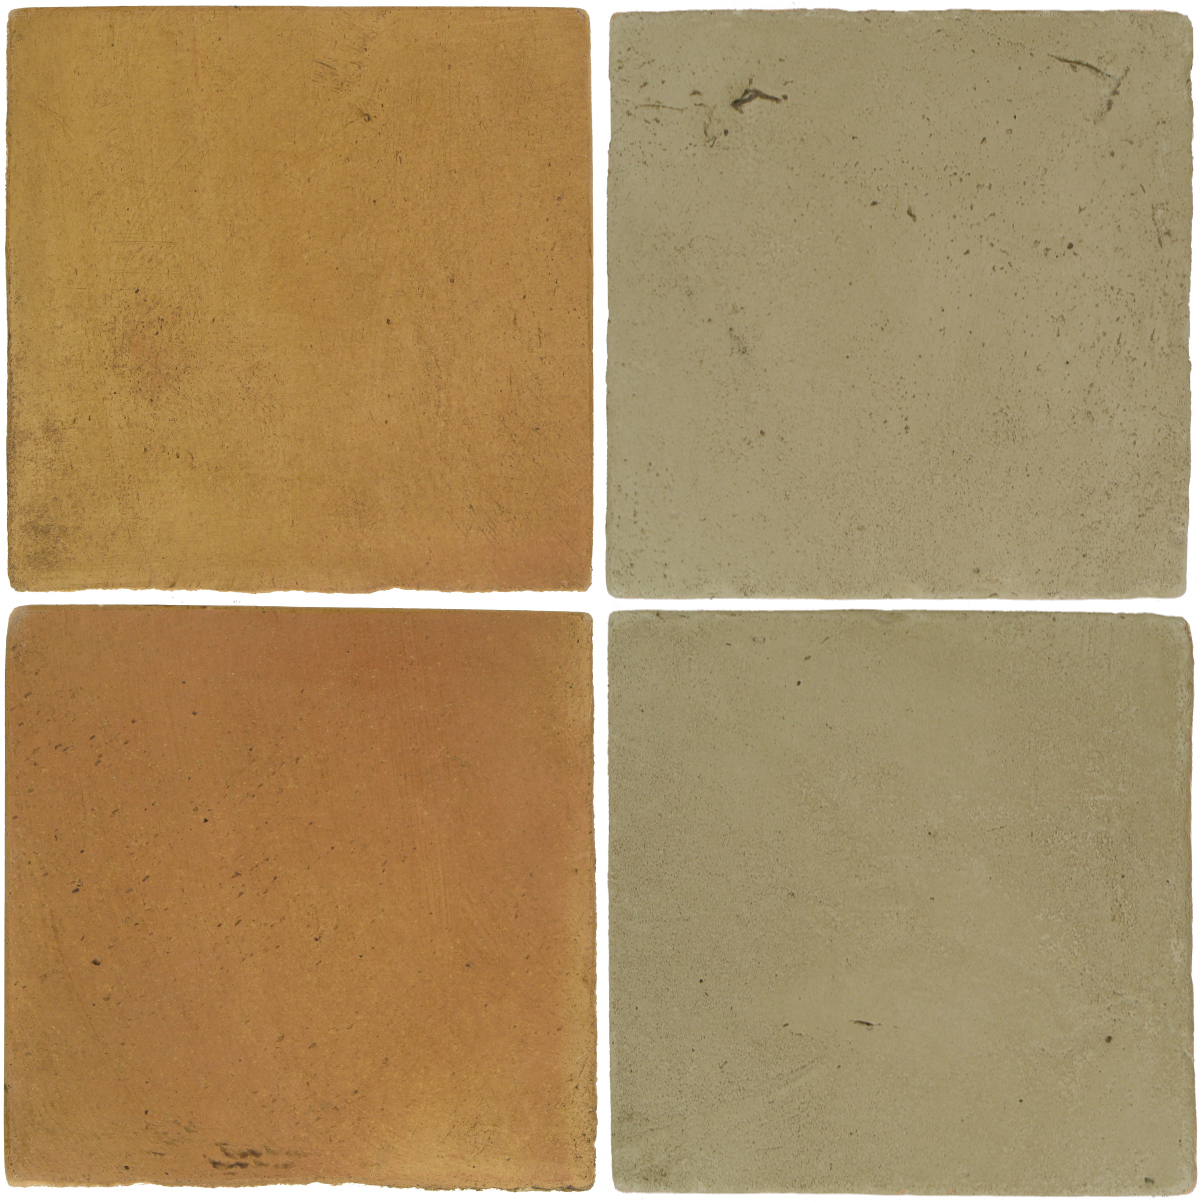 Pedralbes Antique Terracotta  2 Color Combinations  OHS-PSSW Siena Wheat + VTG-PGDW Dirty W.